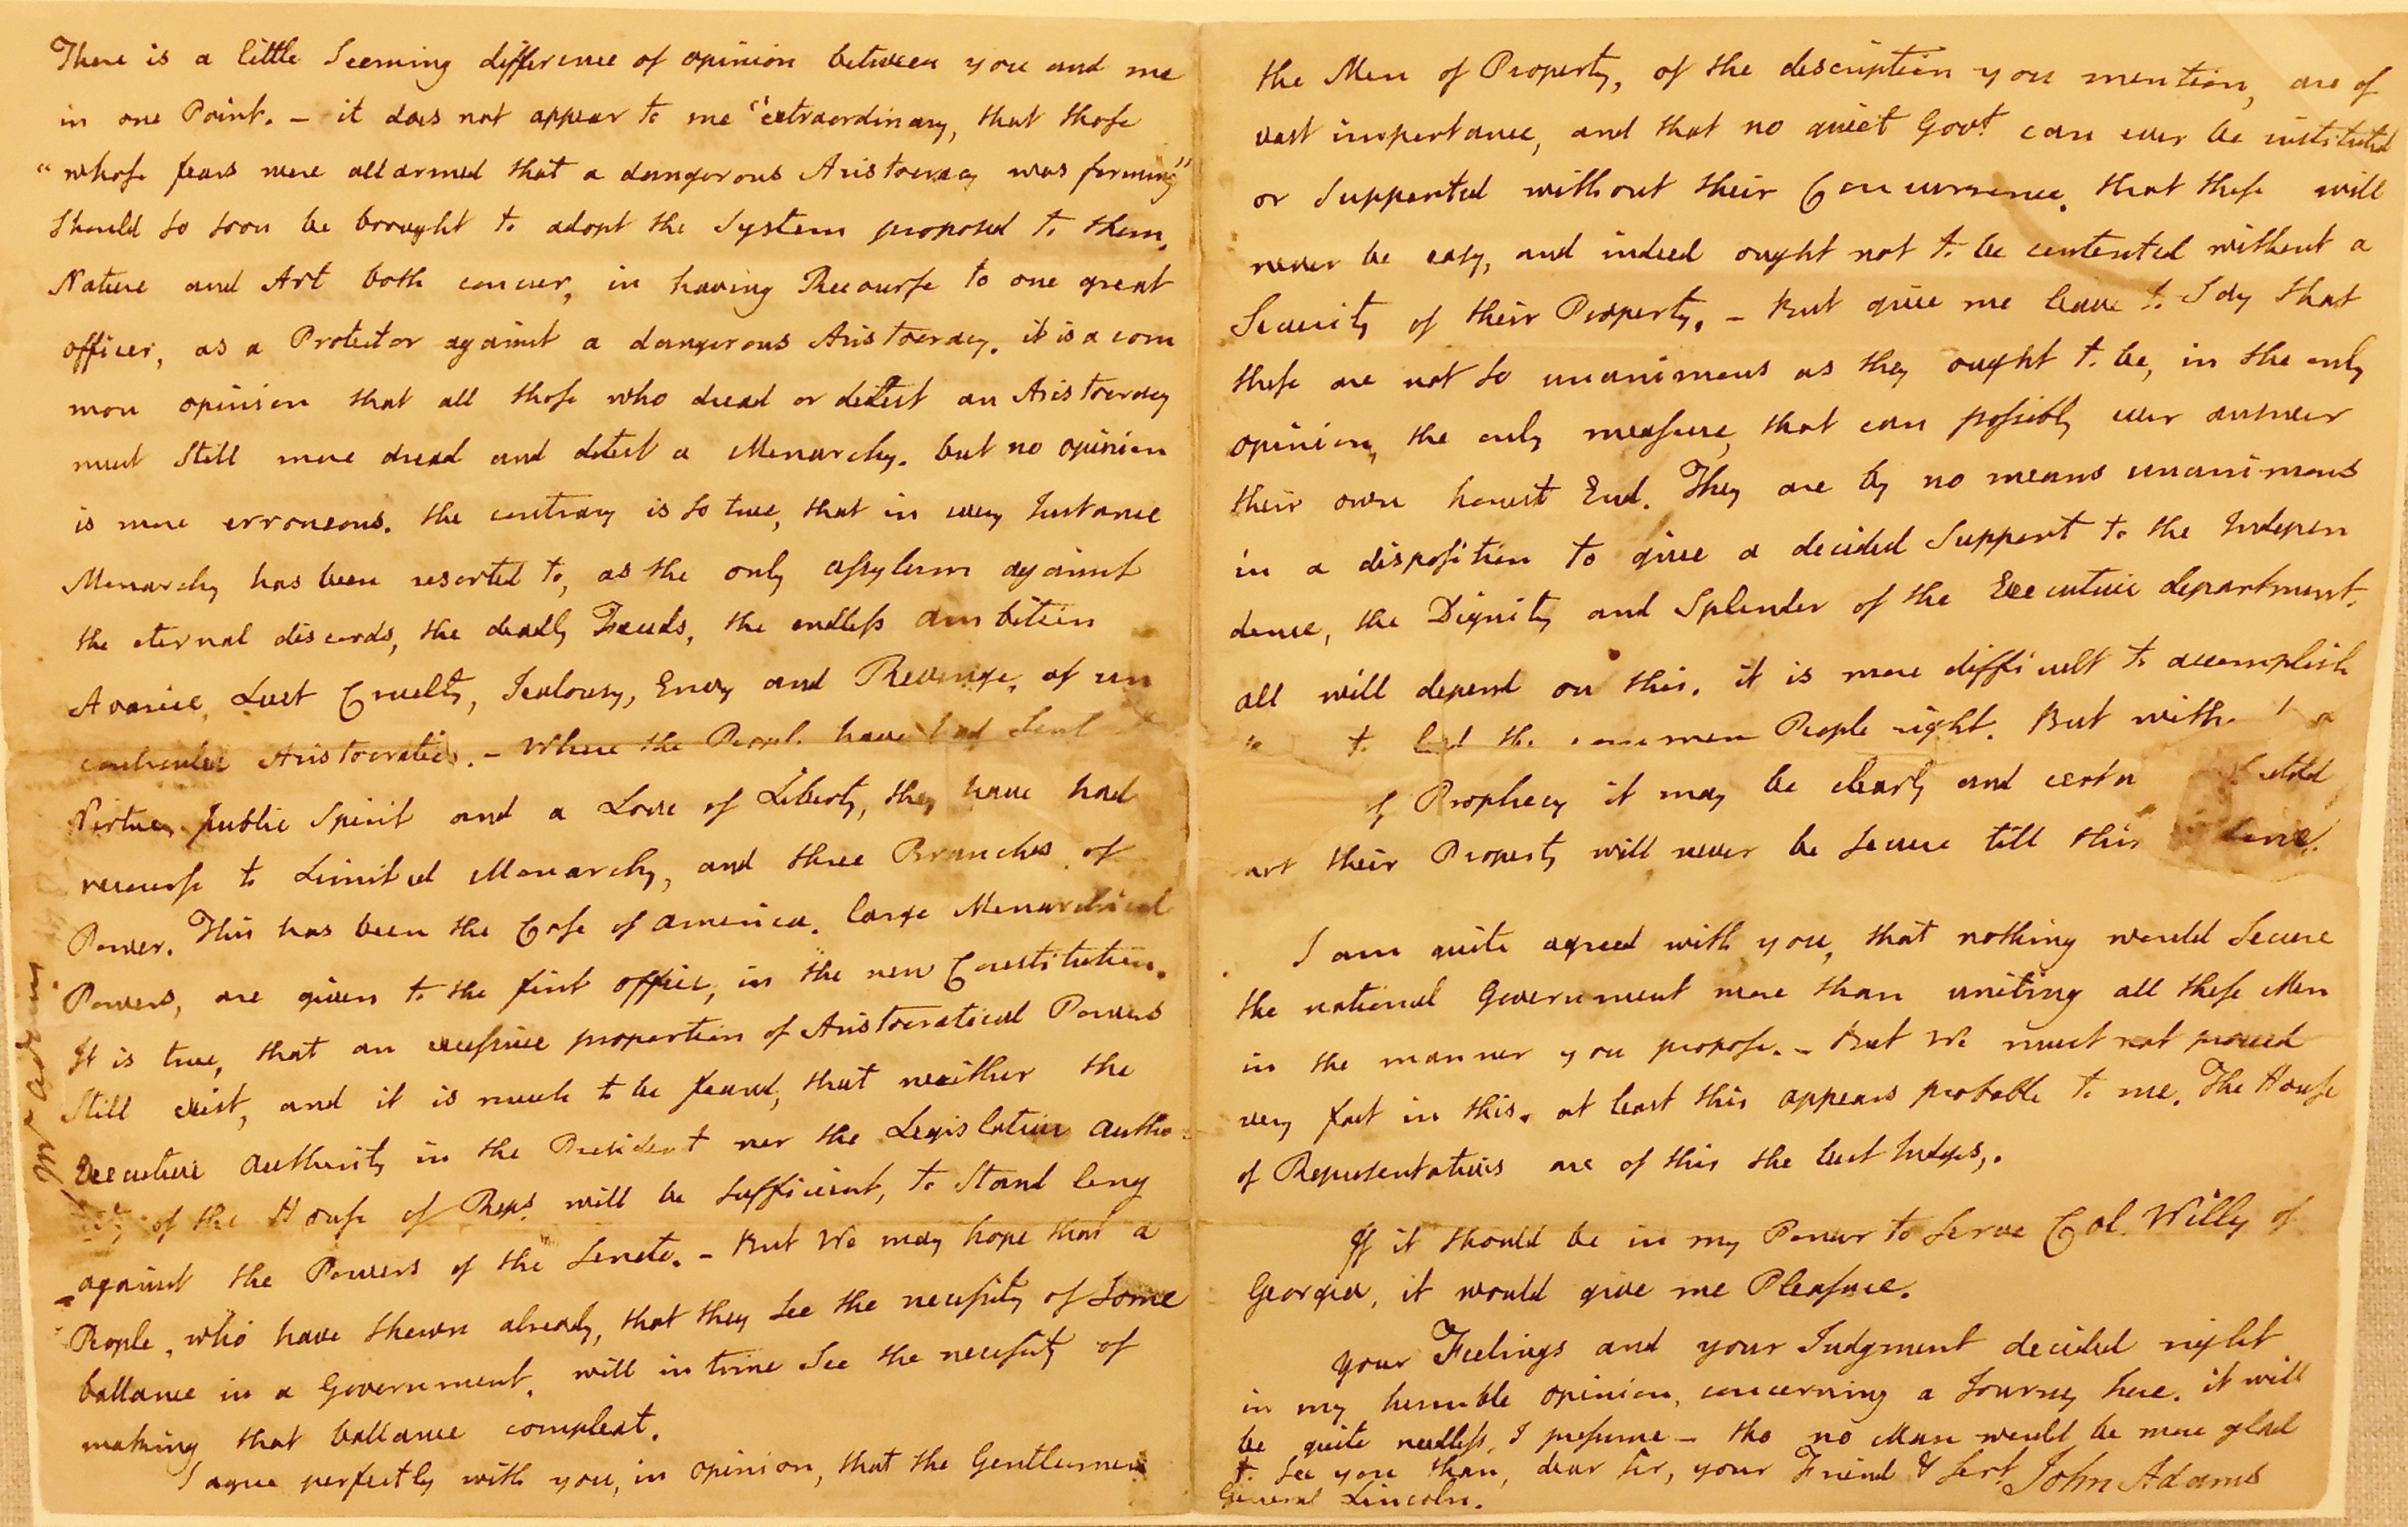 John Adams letter to Benjamin Lincoln